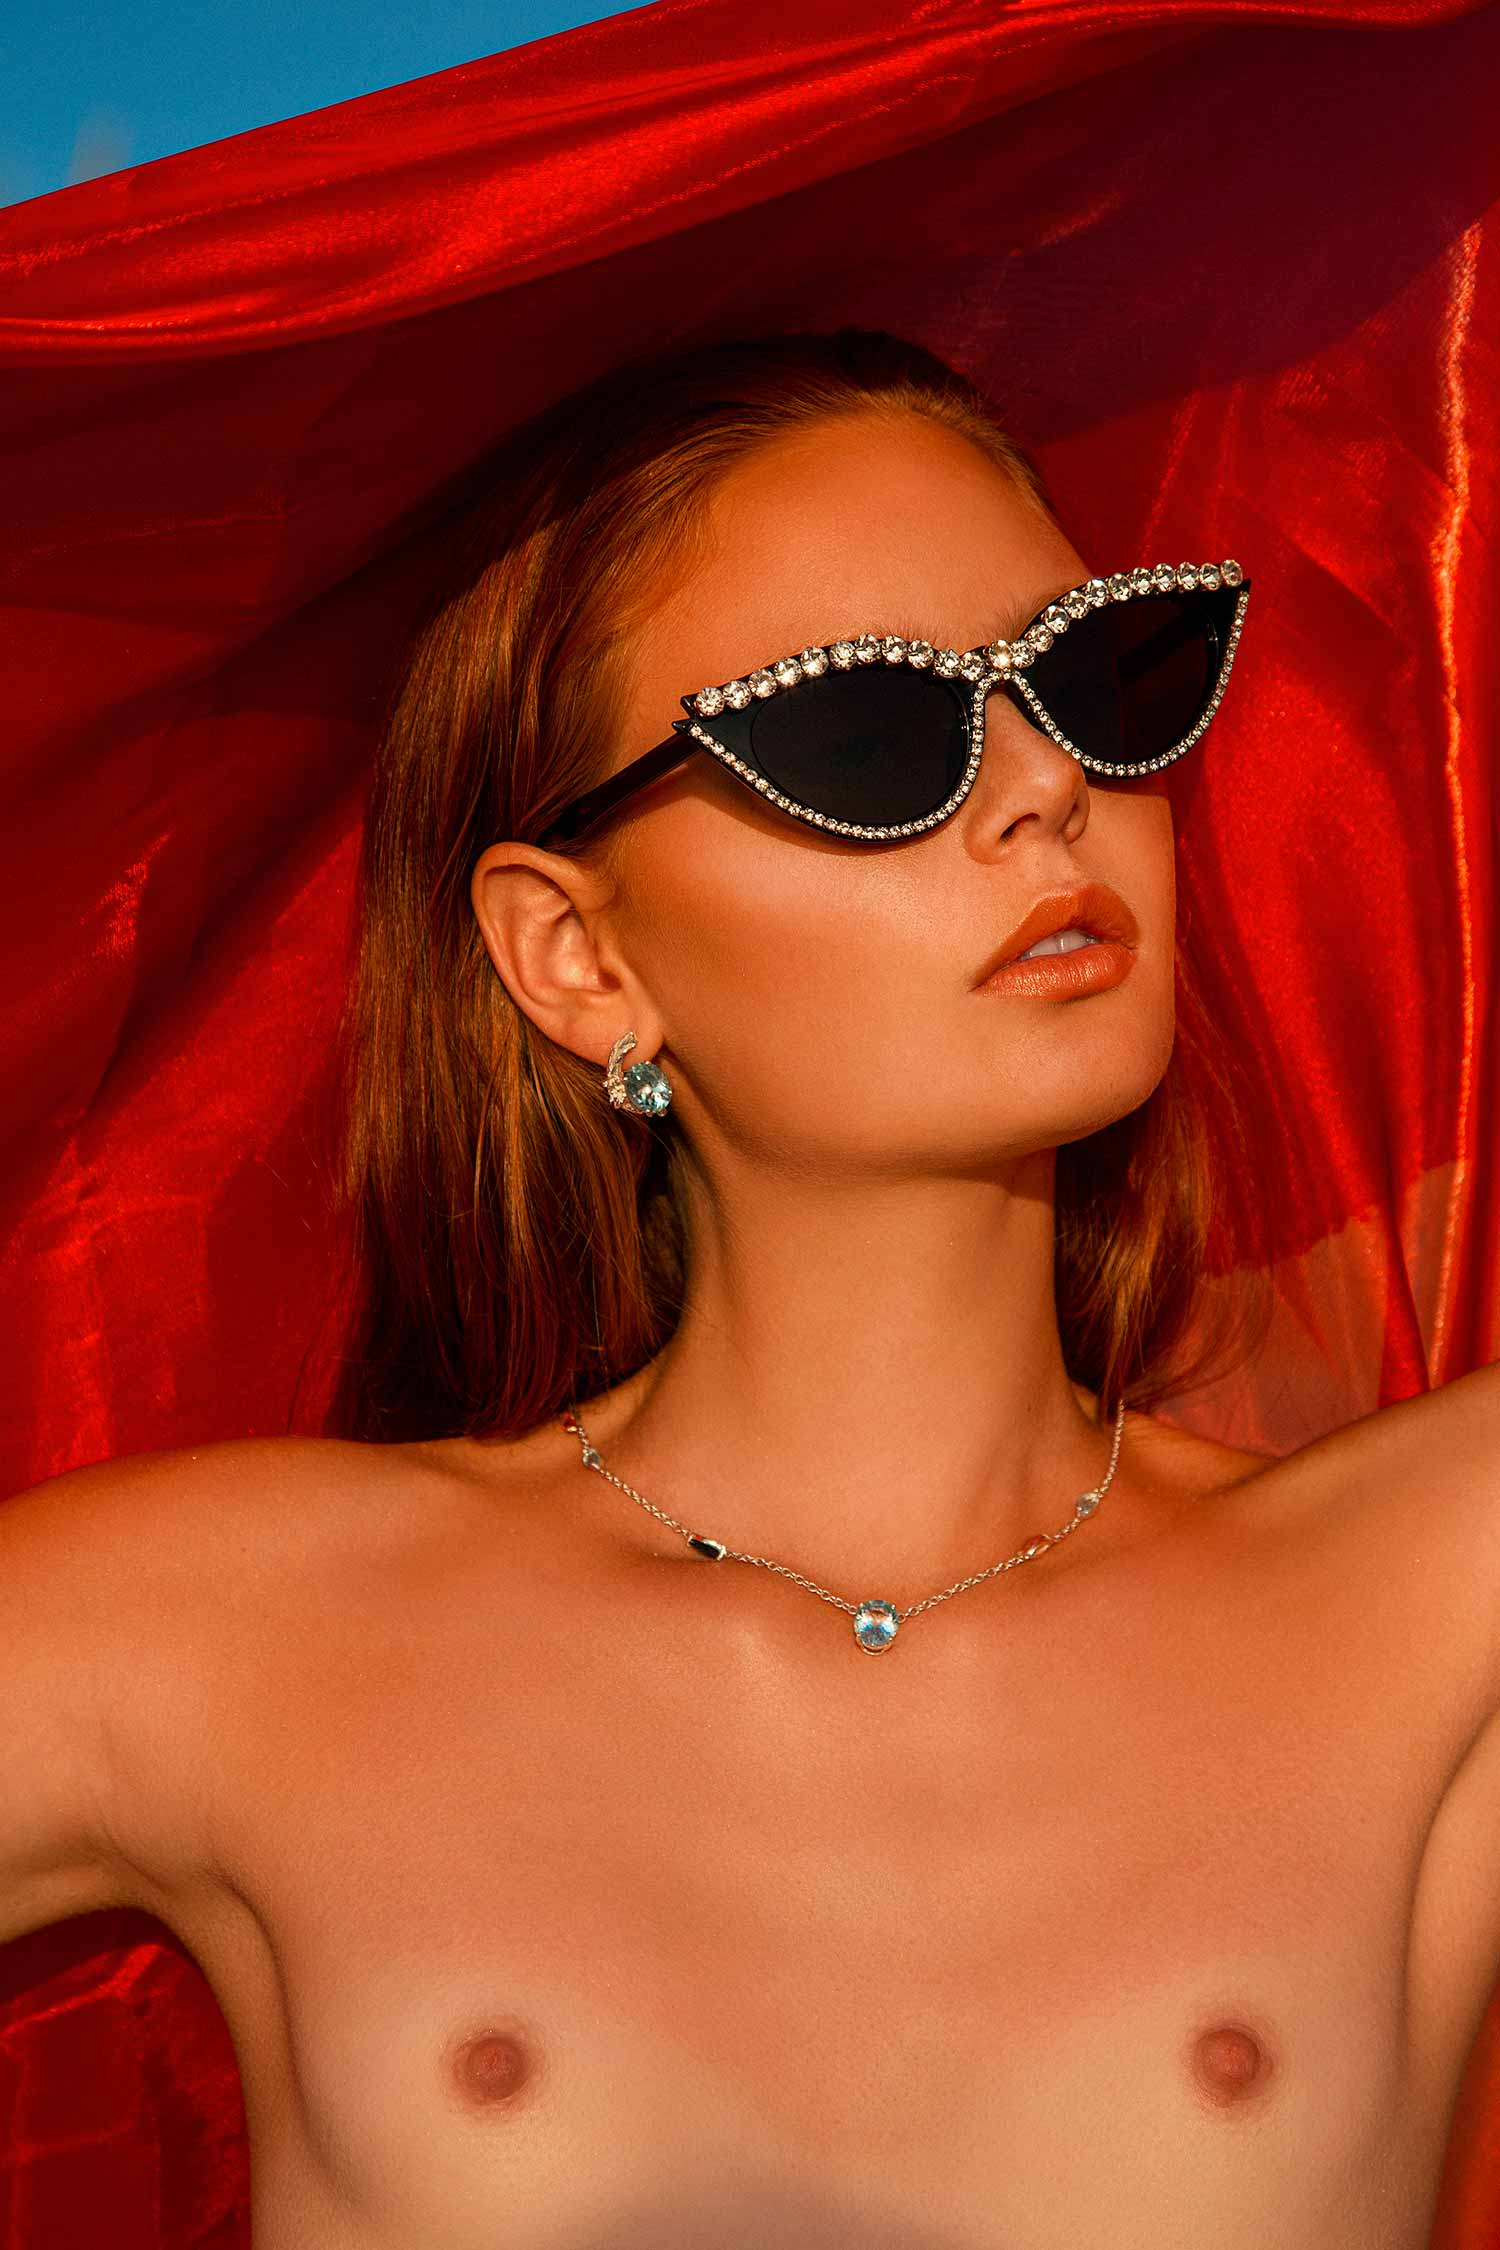 Colourful image of model wearing Zydrune ethically made Celestial jewellery.